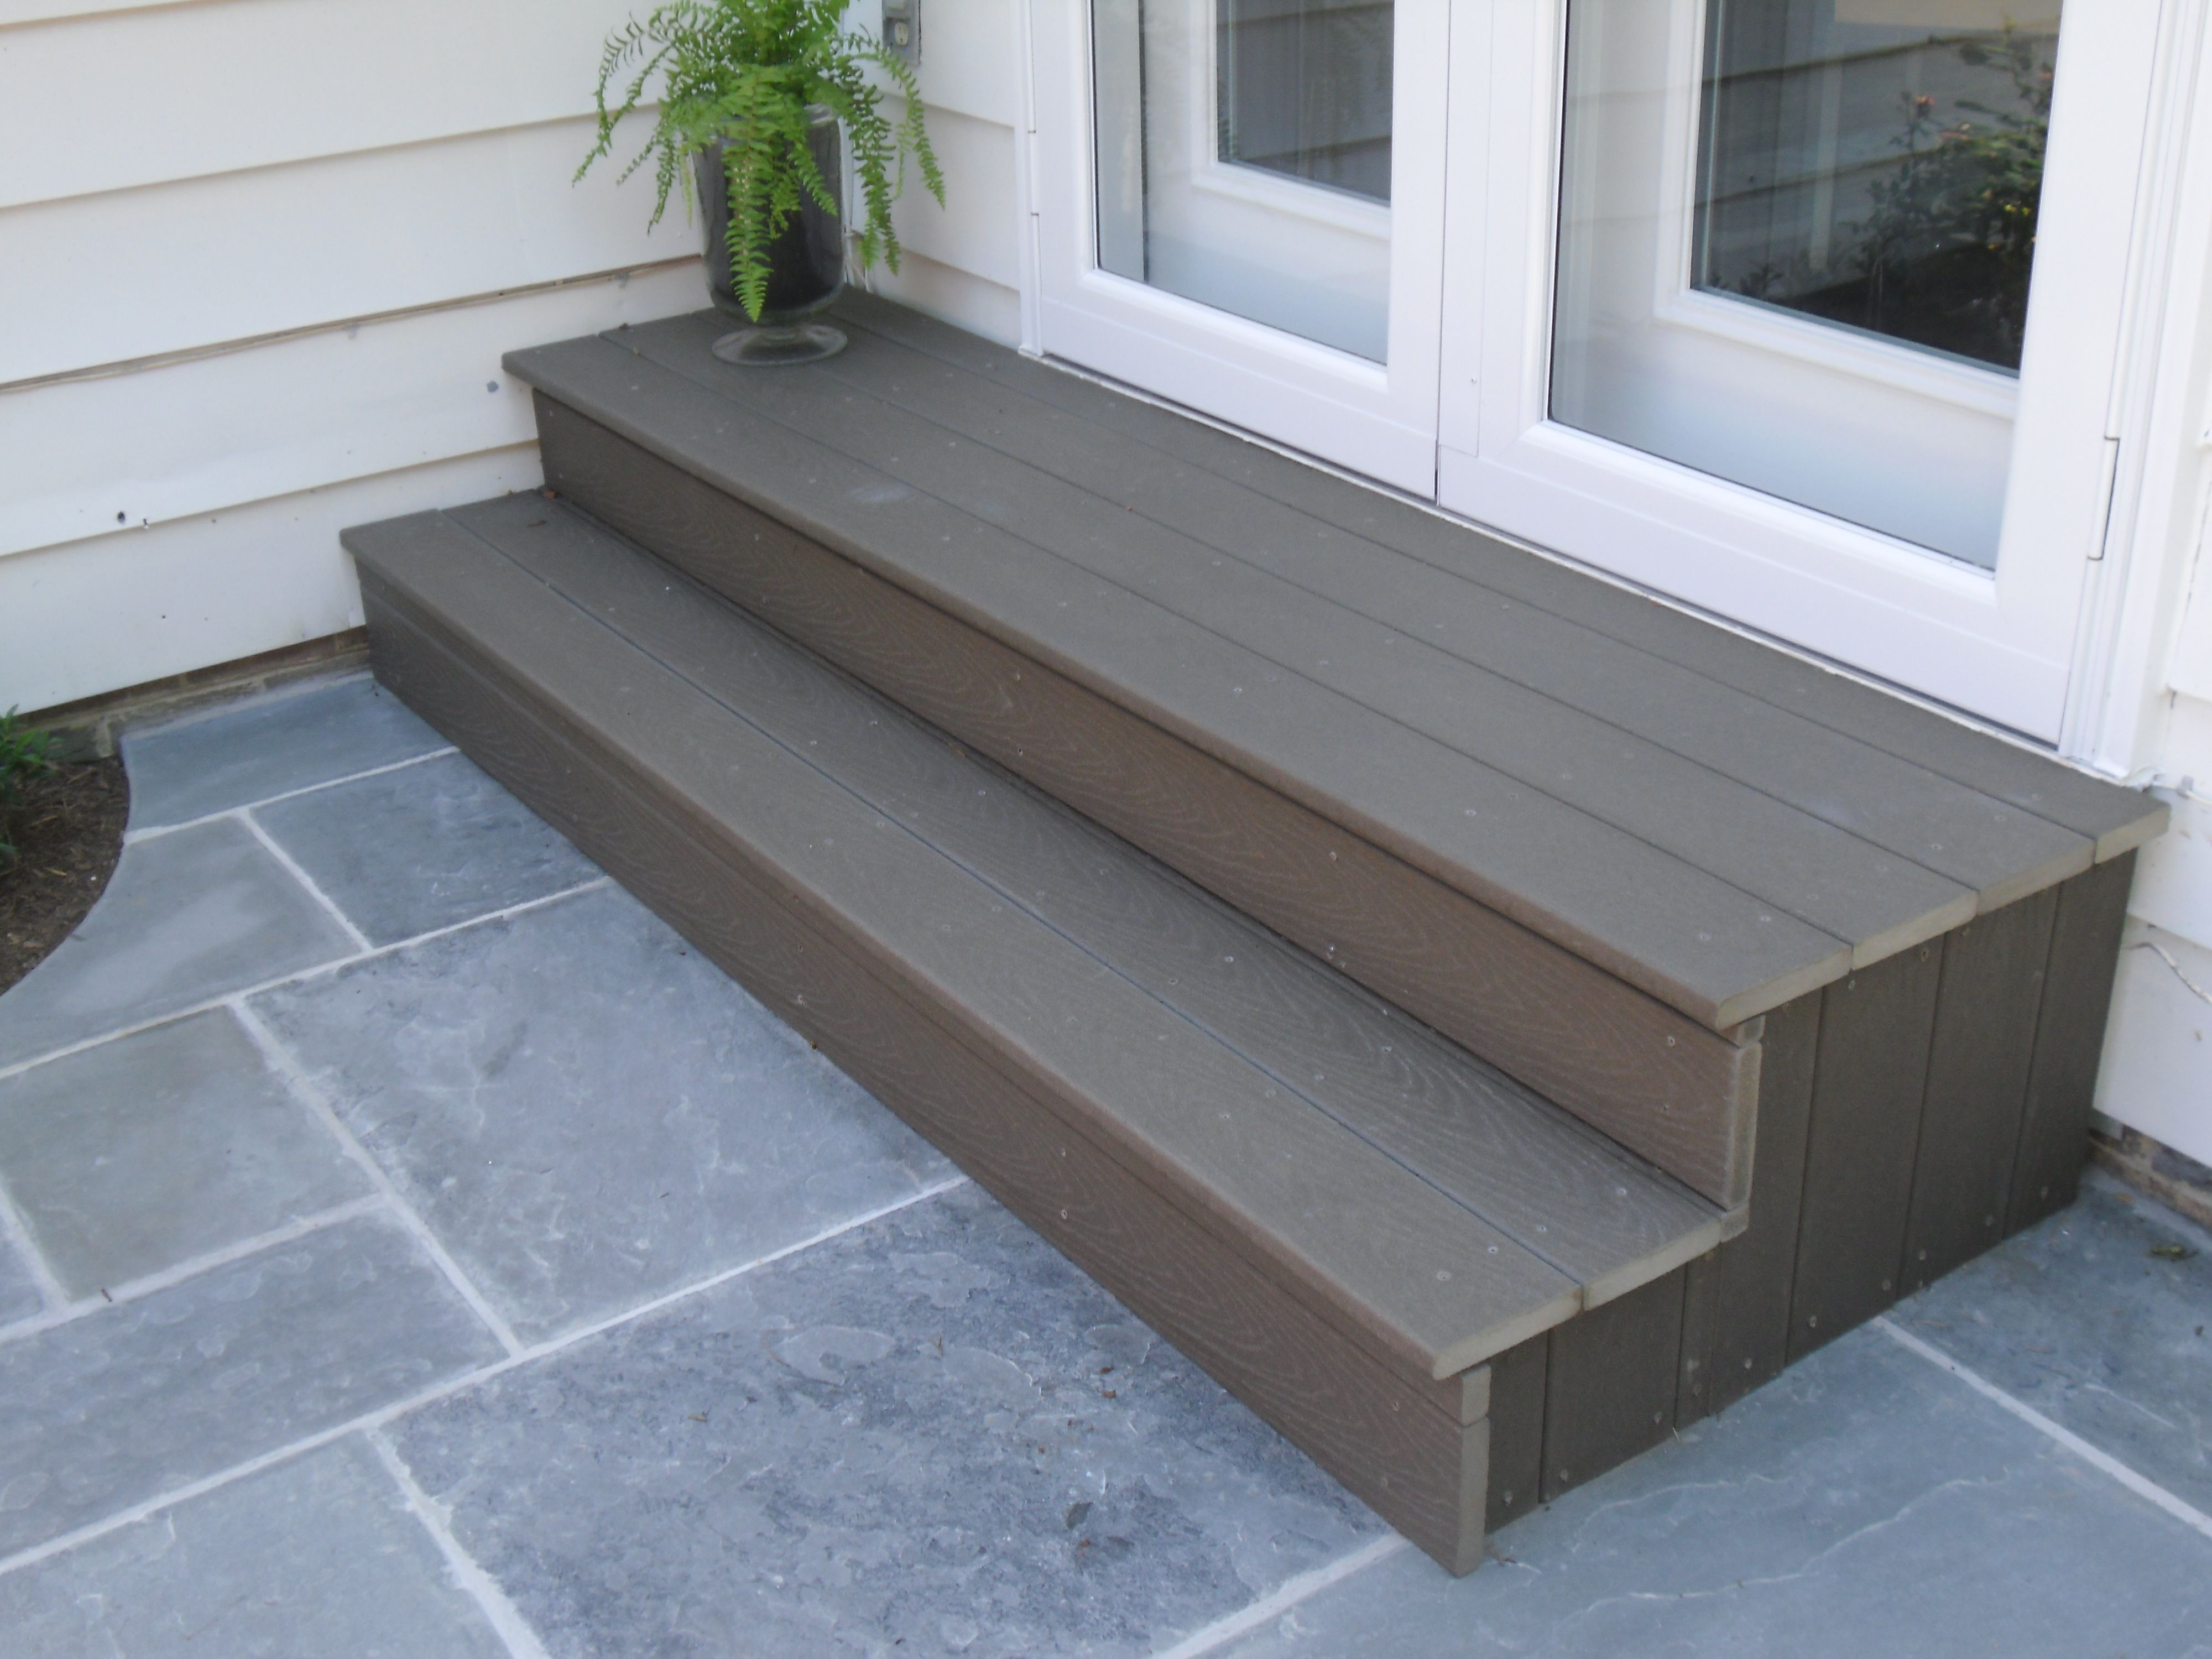 Outdoor steps like this are a great do it yourself accessory to any outdoor steps like this are a great do it yourself accessory to any backyard patio repin to your diy board washington dc area johnsons landscaping solutioingenieria